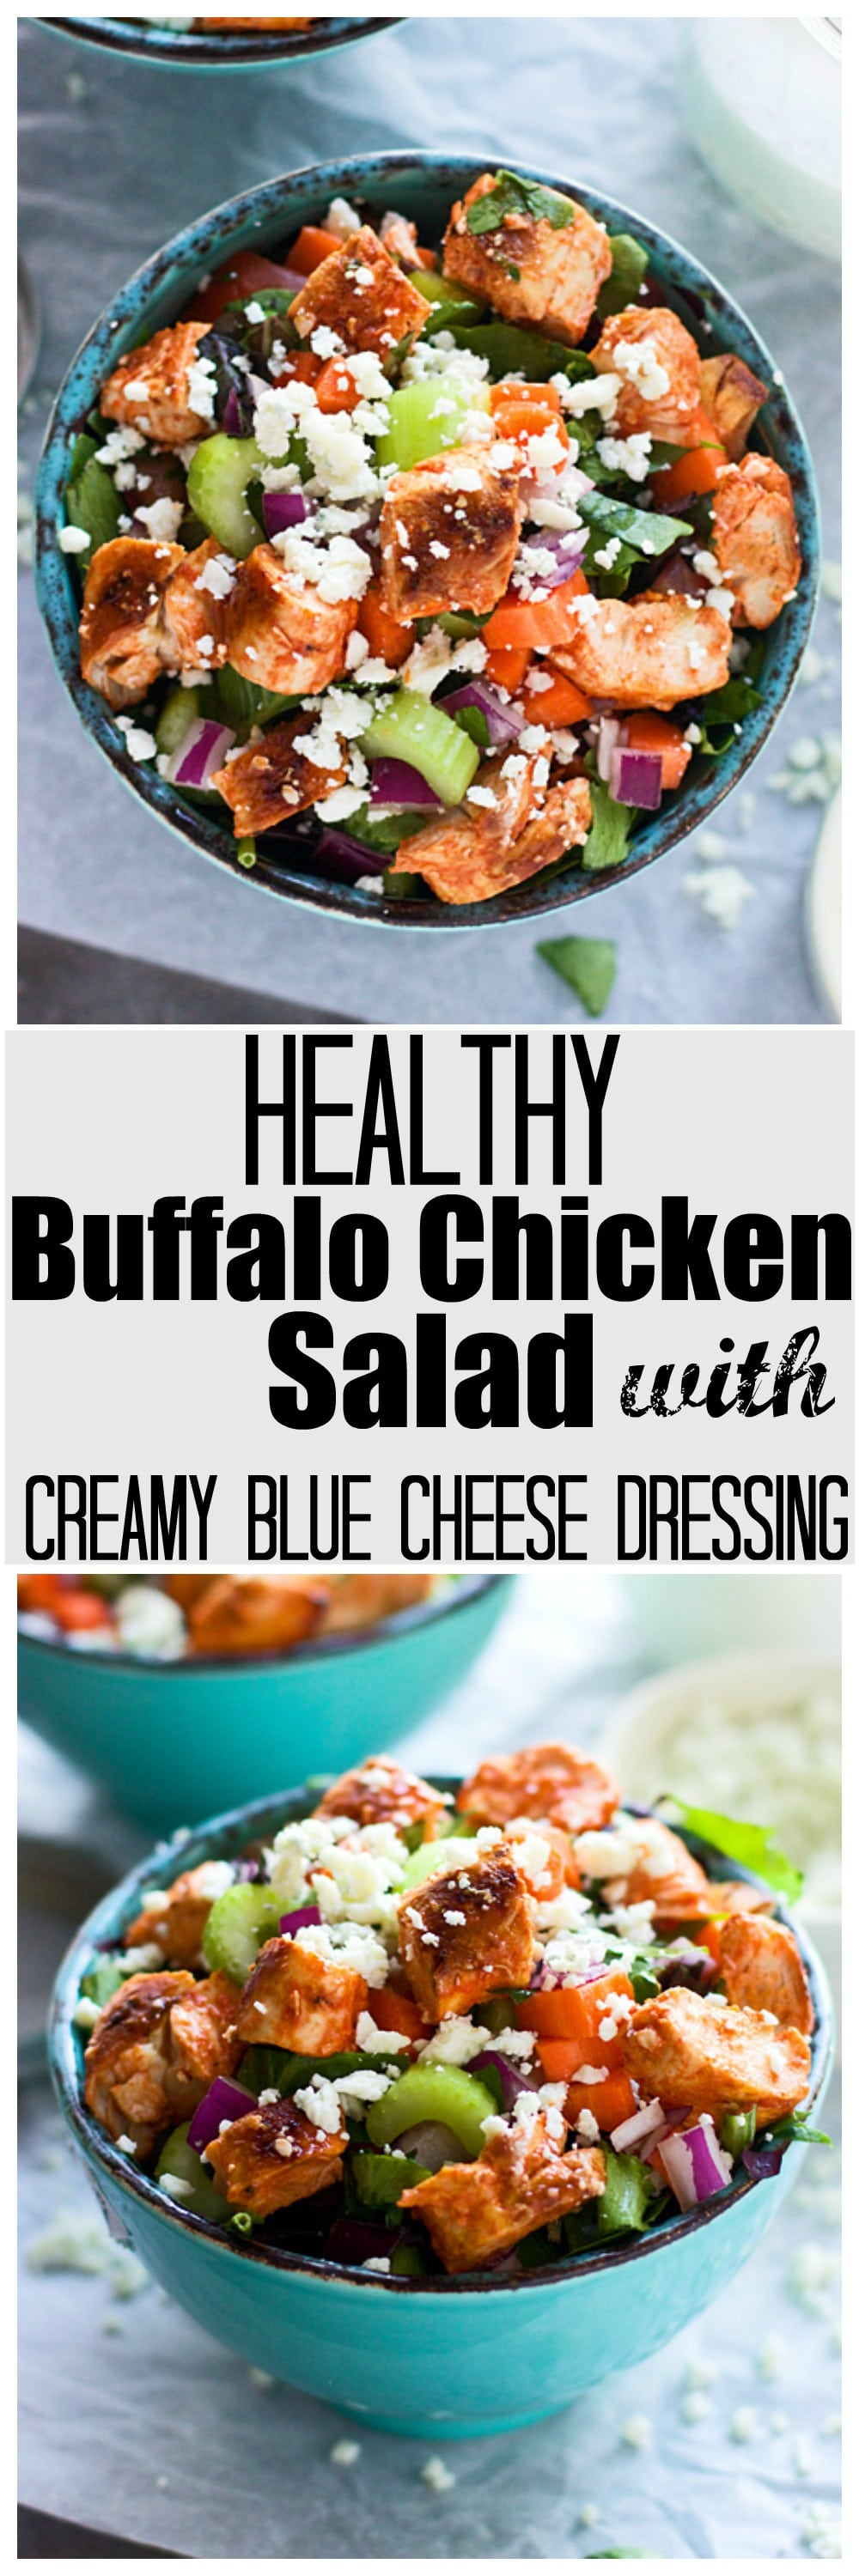 Healthy Chopped Buffalo Chicken Salsad with Creamy Blue Cheese Dressing